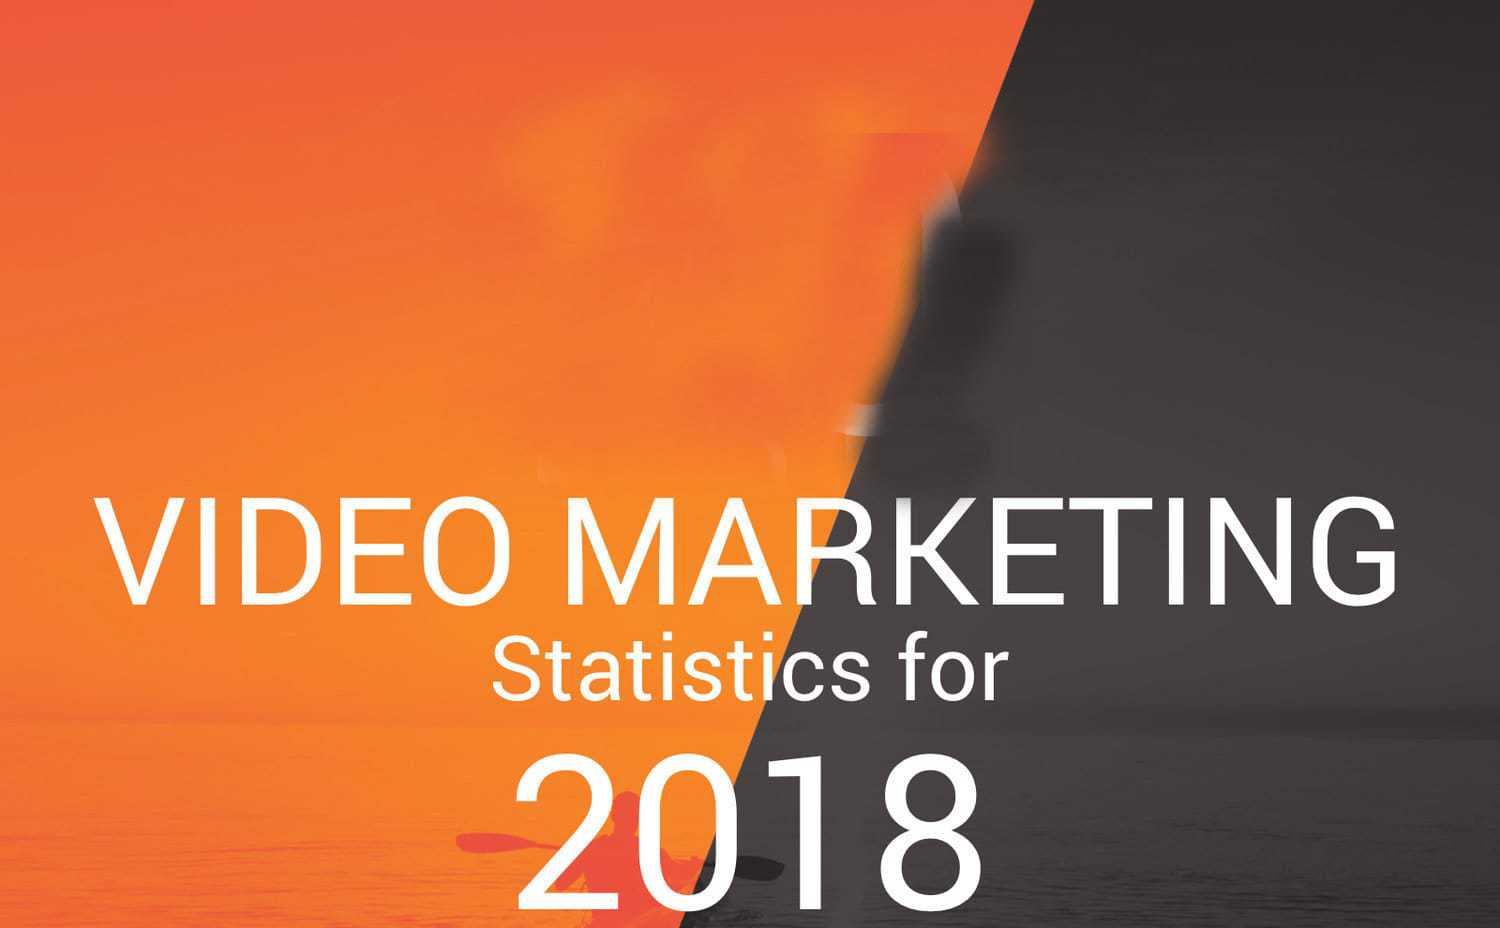 10 Best Video Marketing Statistics That You Need To Know About